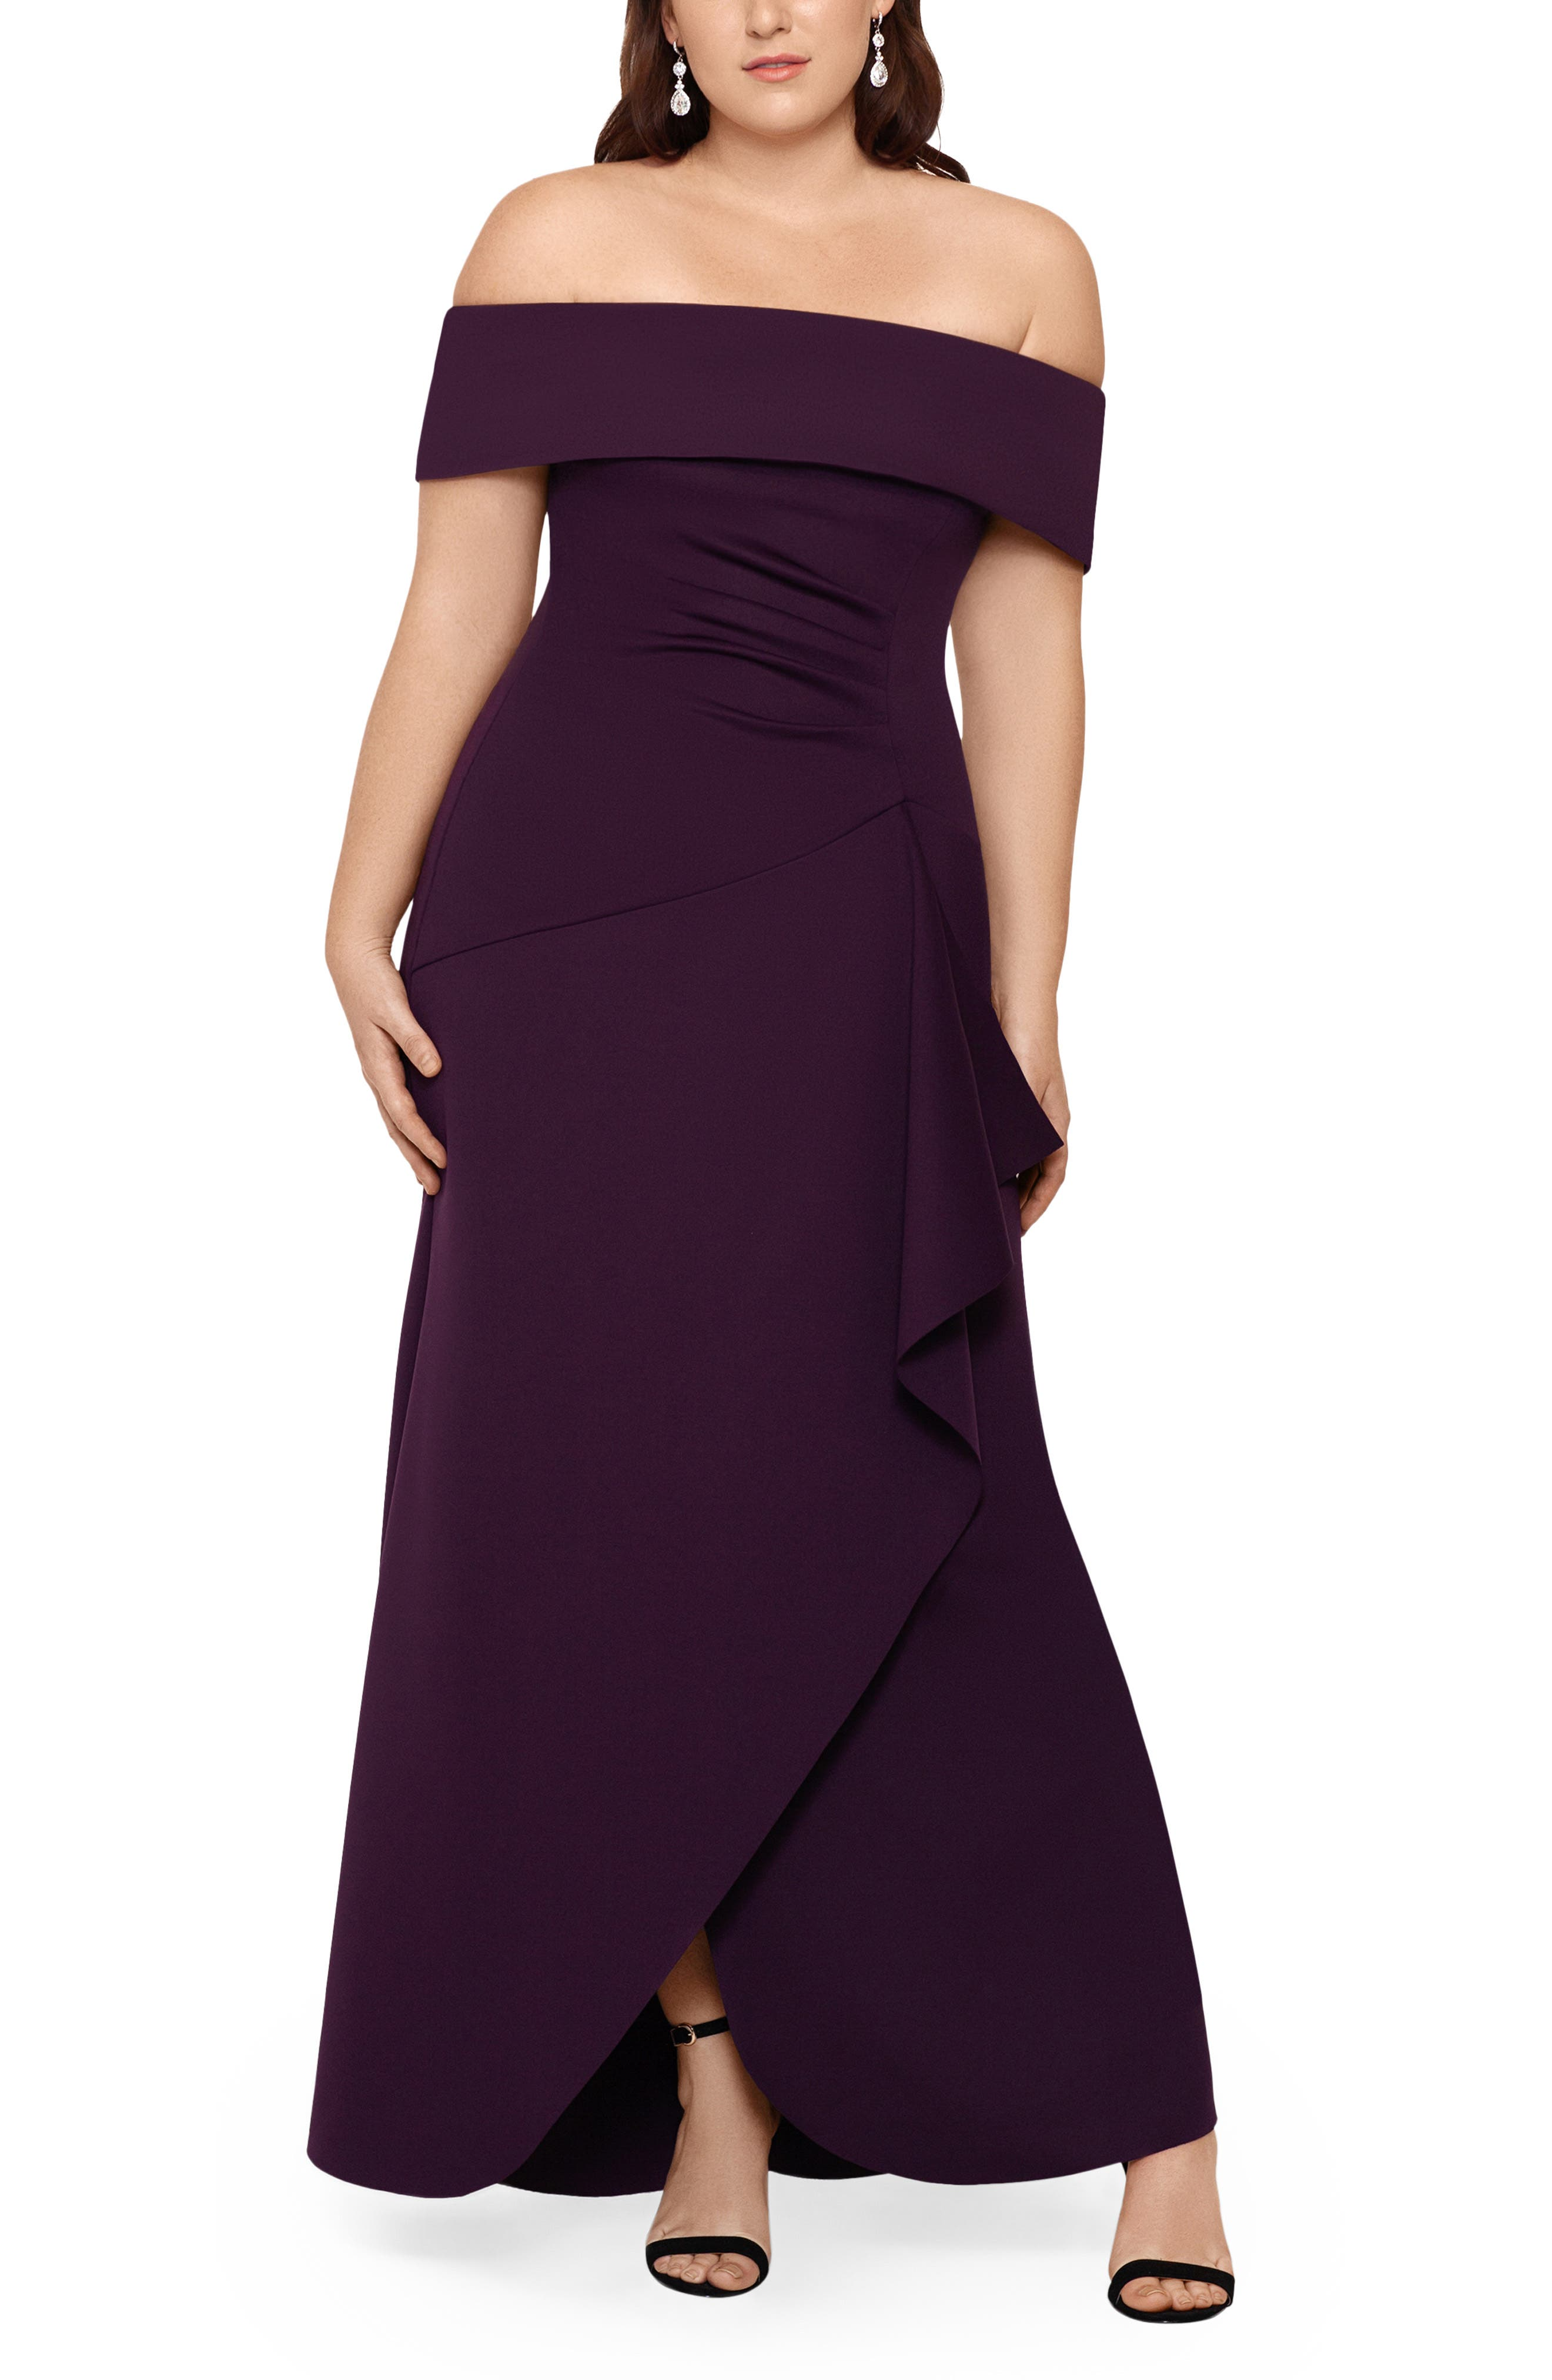 a7f1721637ed6 Plus-Size Dresses | Nordstrom